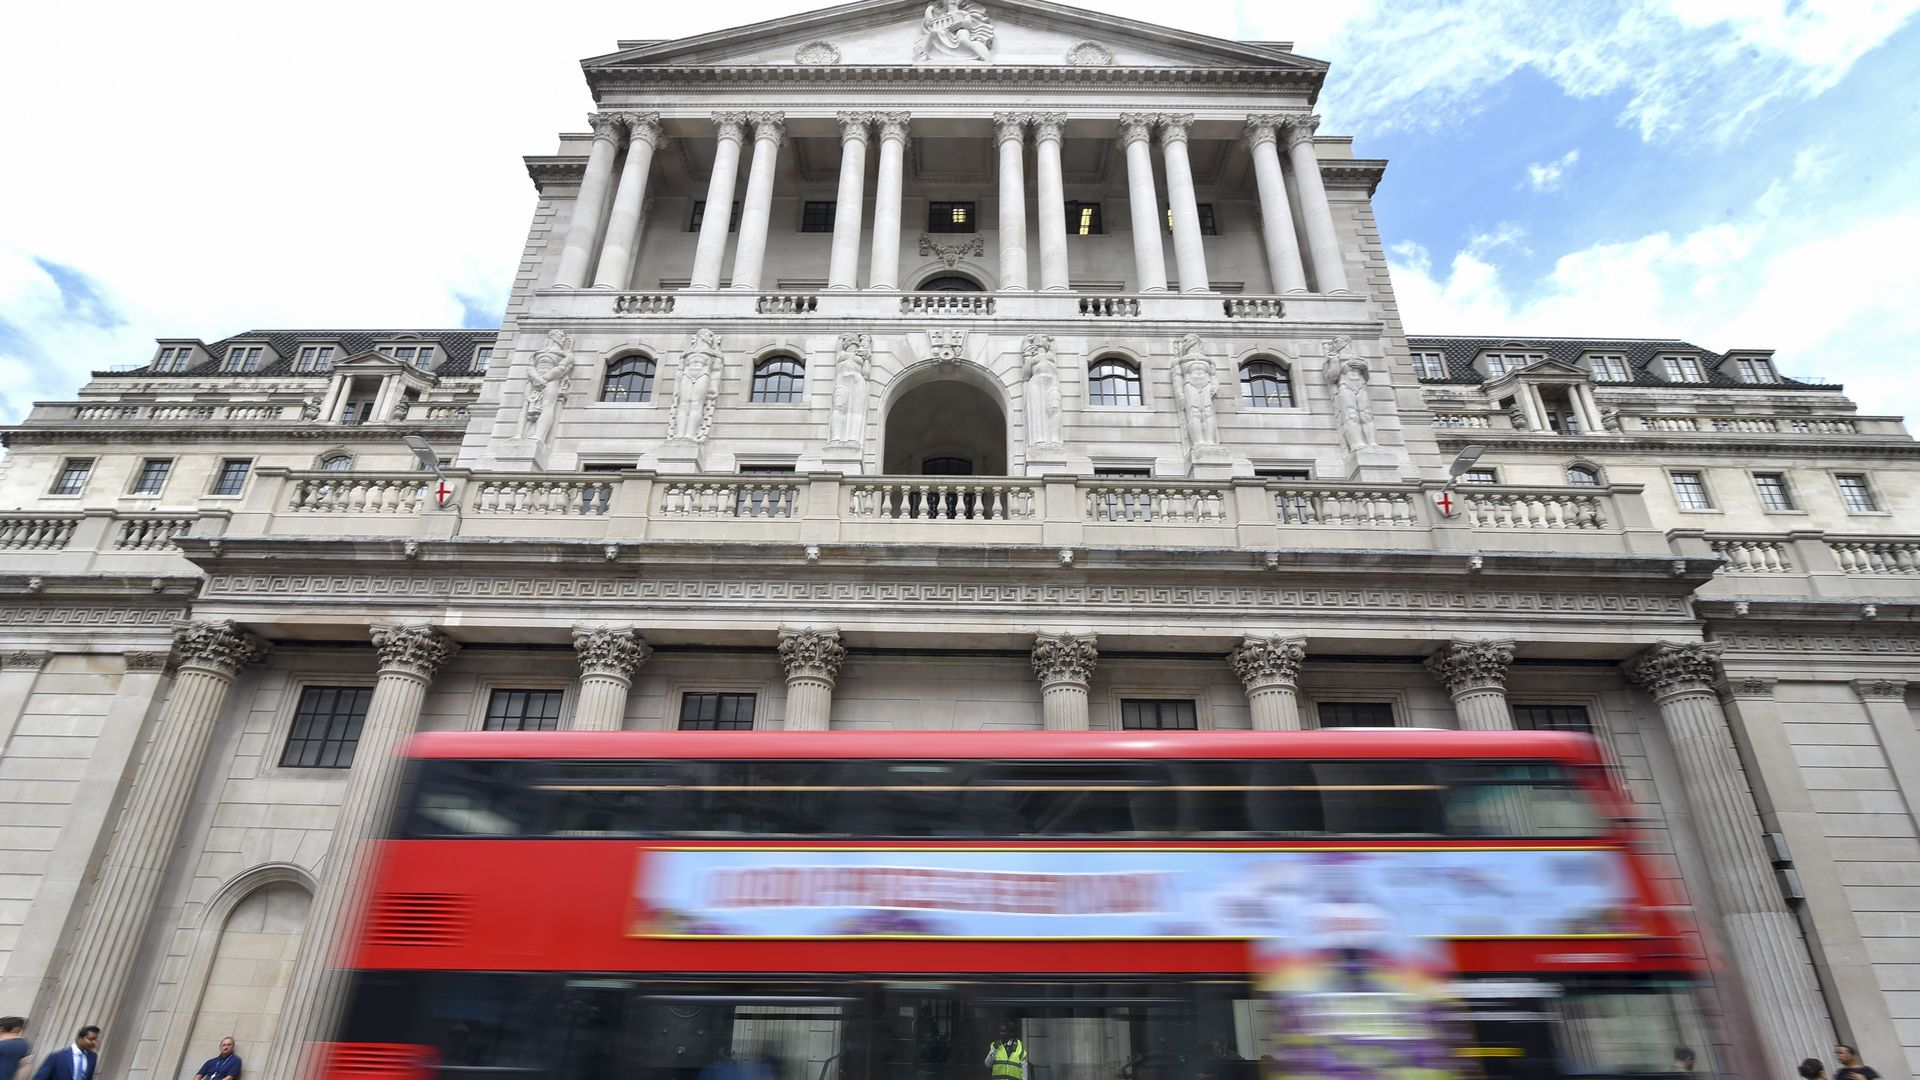 Bank of England with a double-decker zooming by